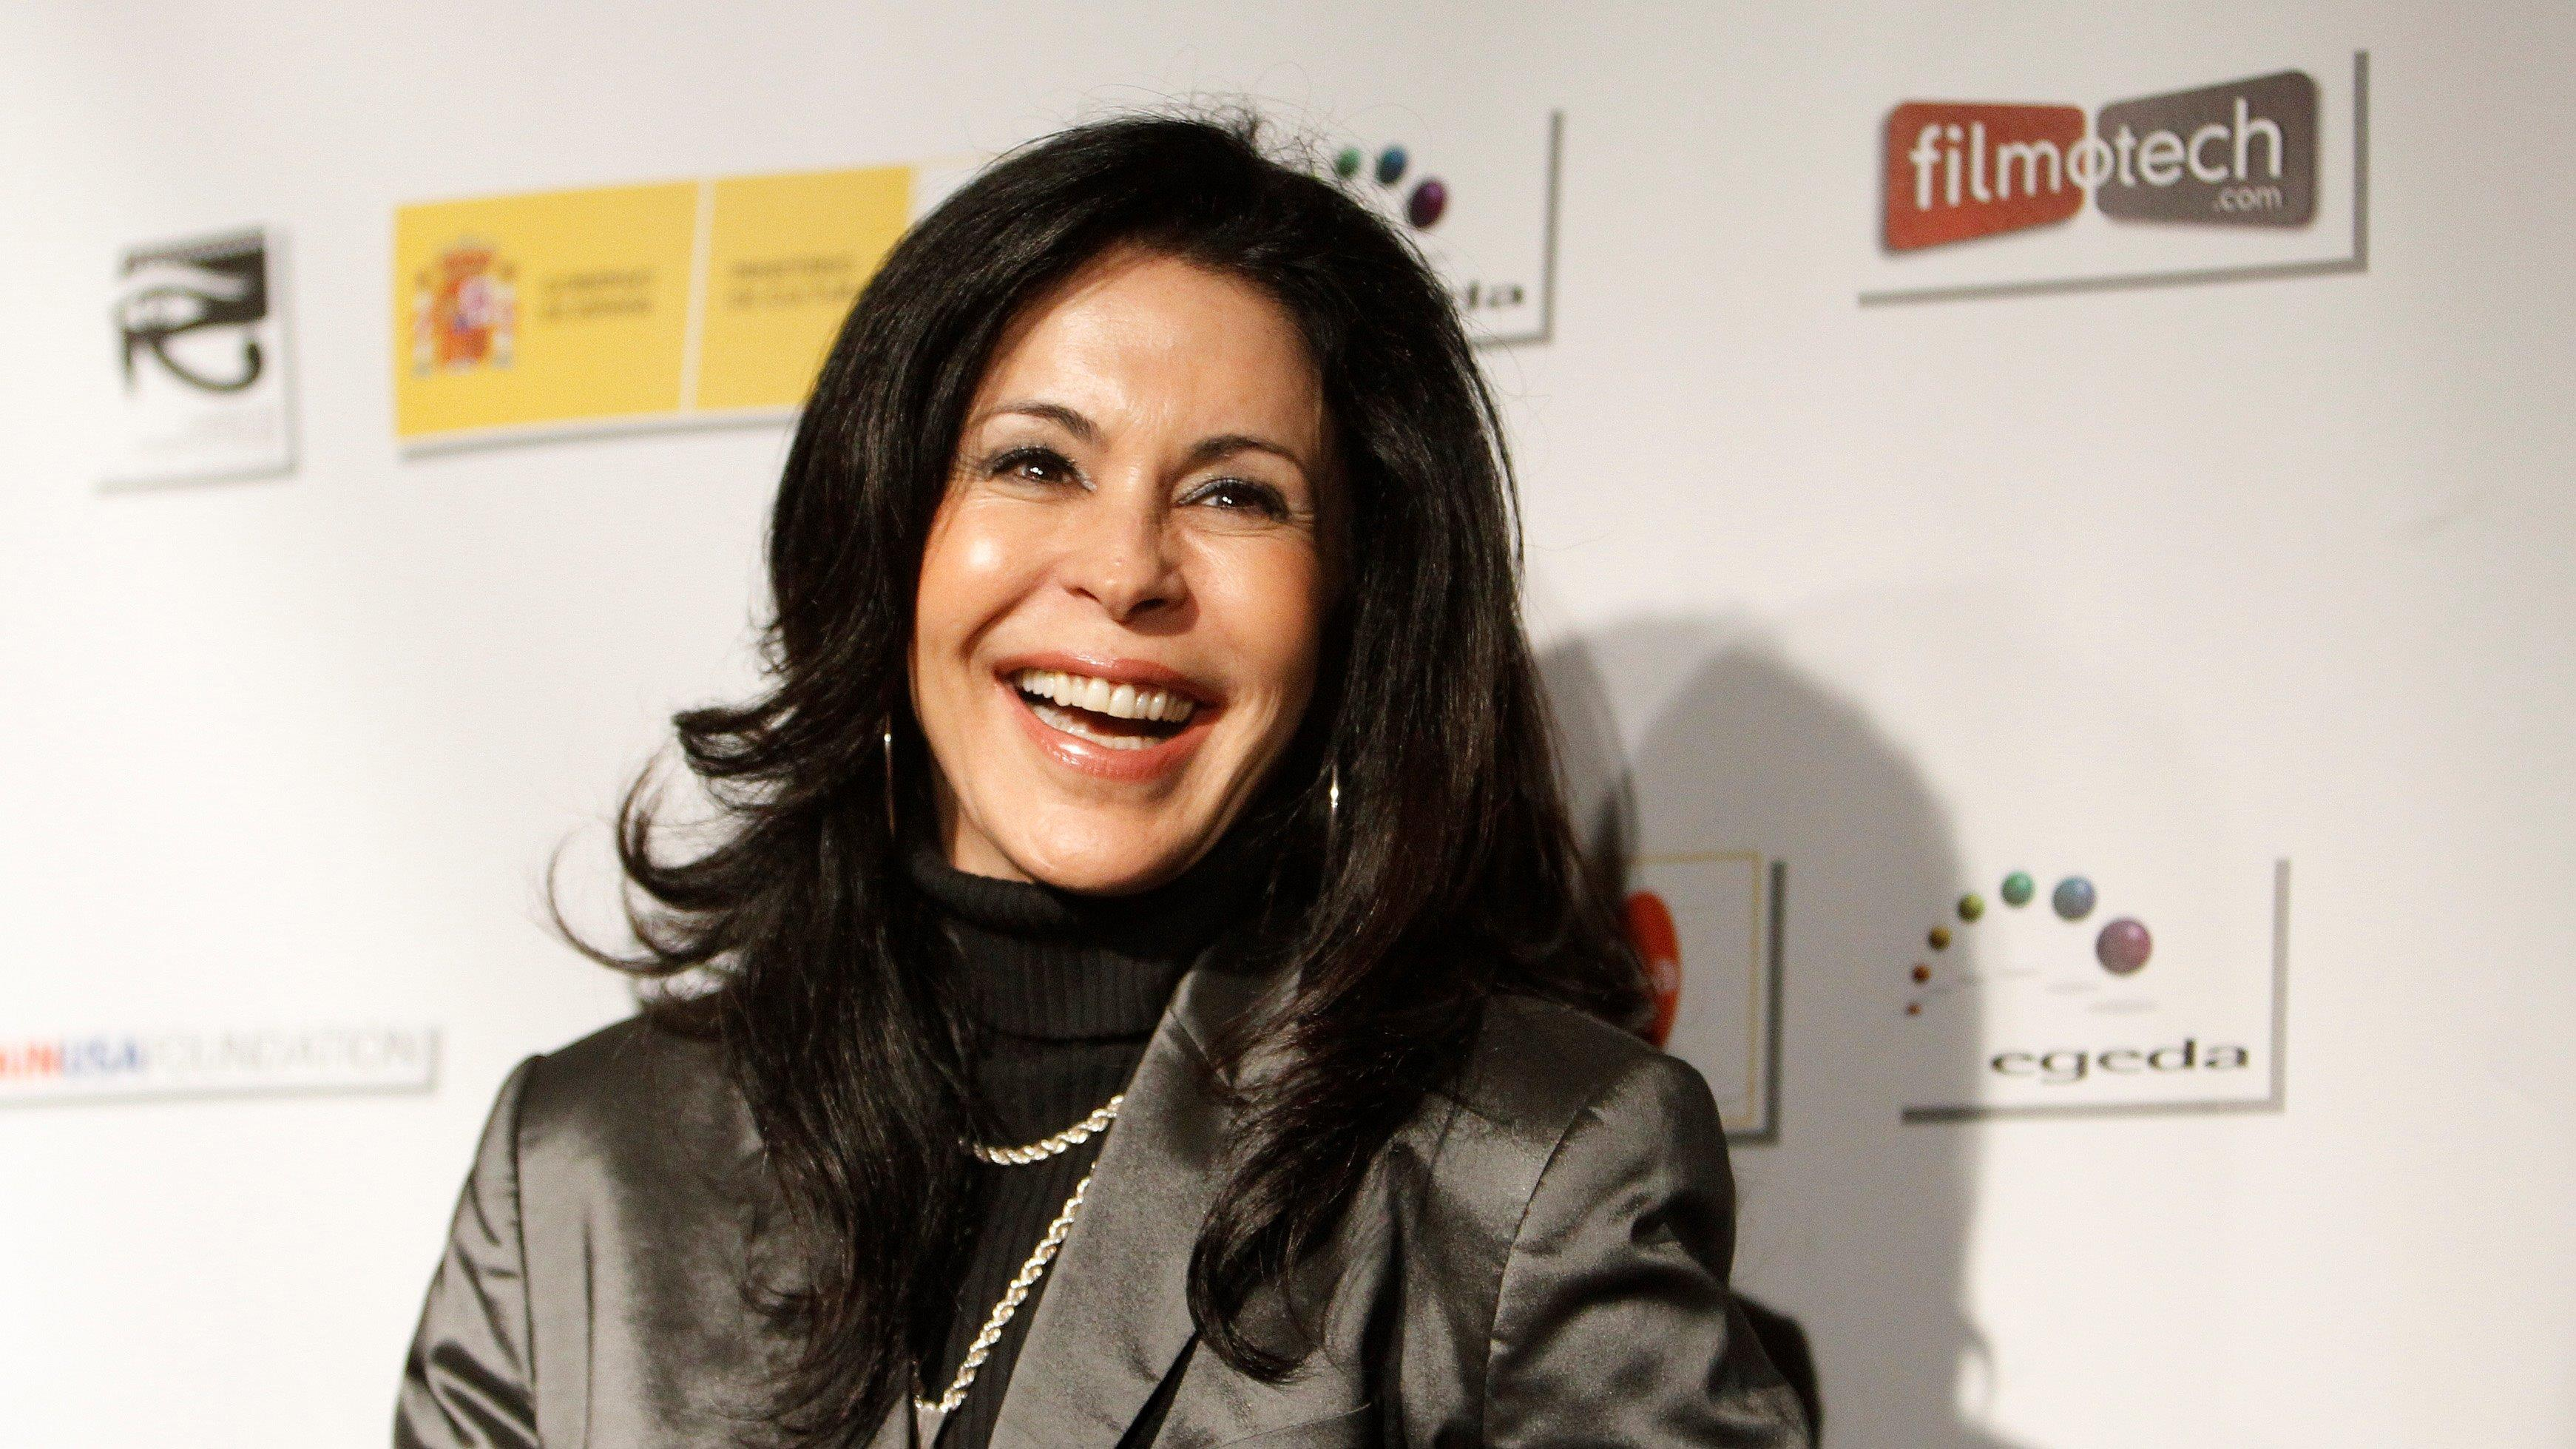 Actress and musician Maria Conchita Alonso discusses the crisis in Venezuela and her new music video.